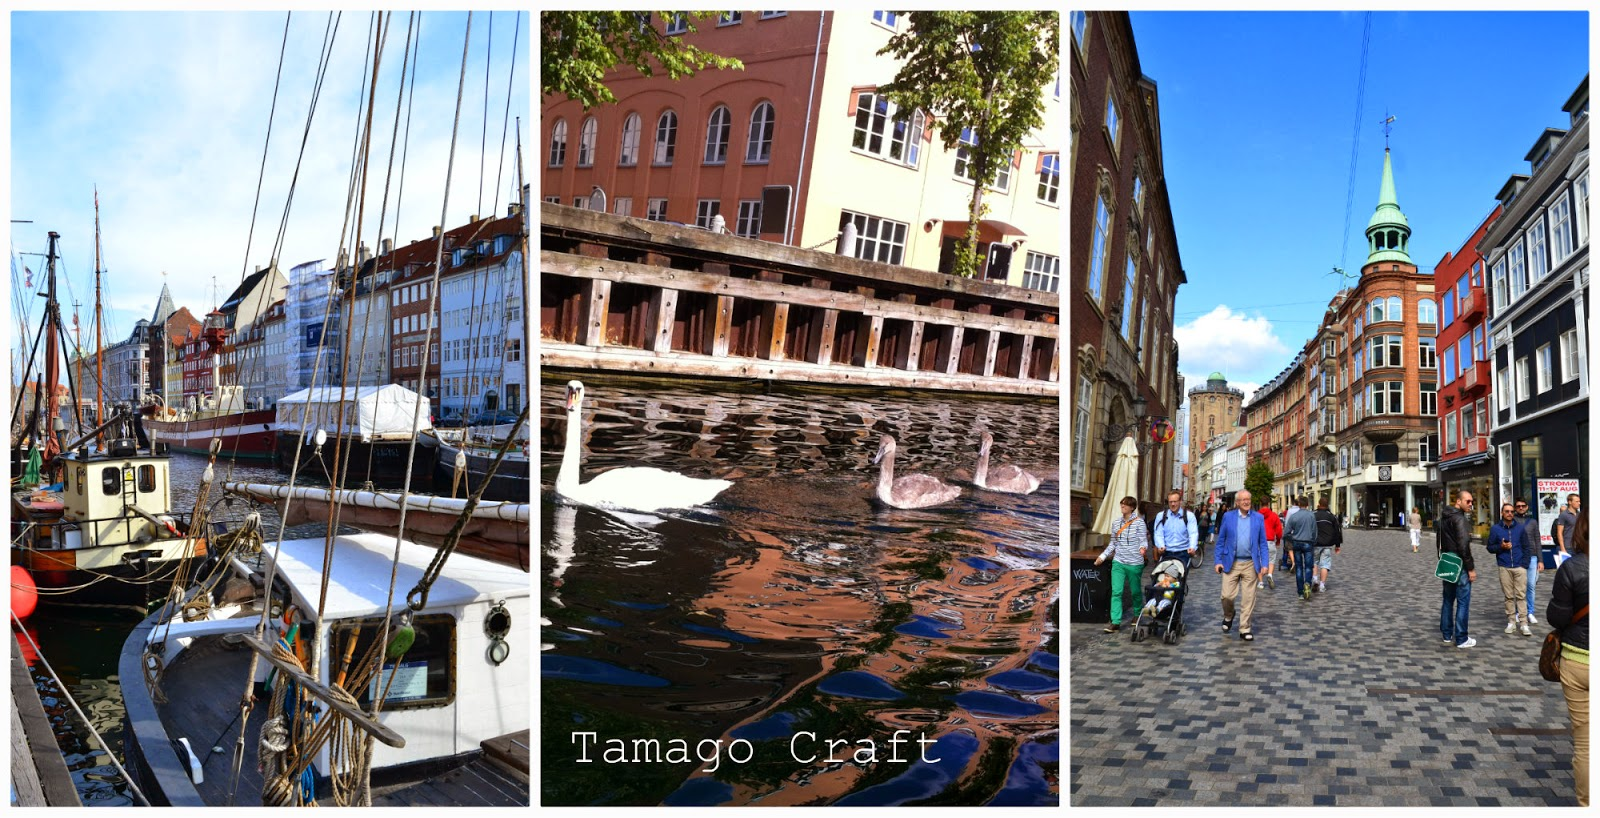 Tamago Craft: splendida Copenaghen